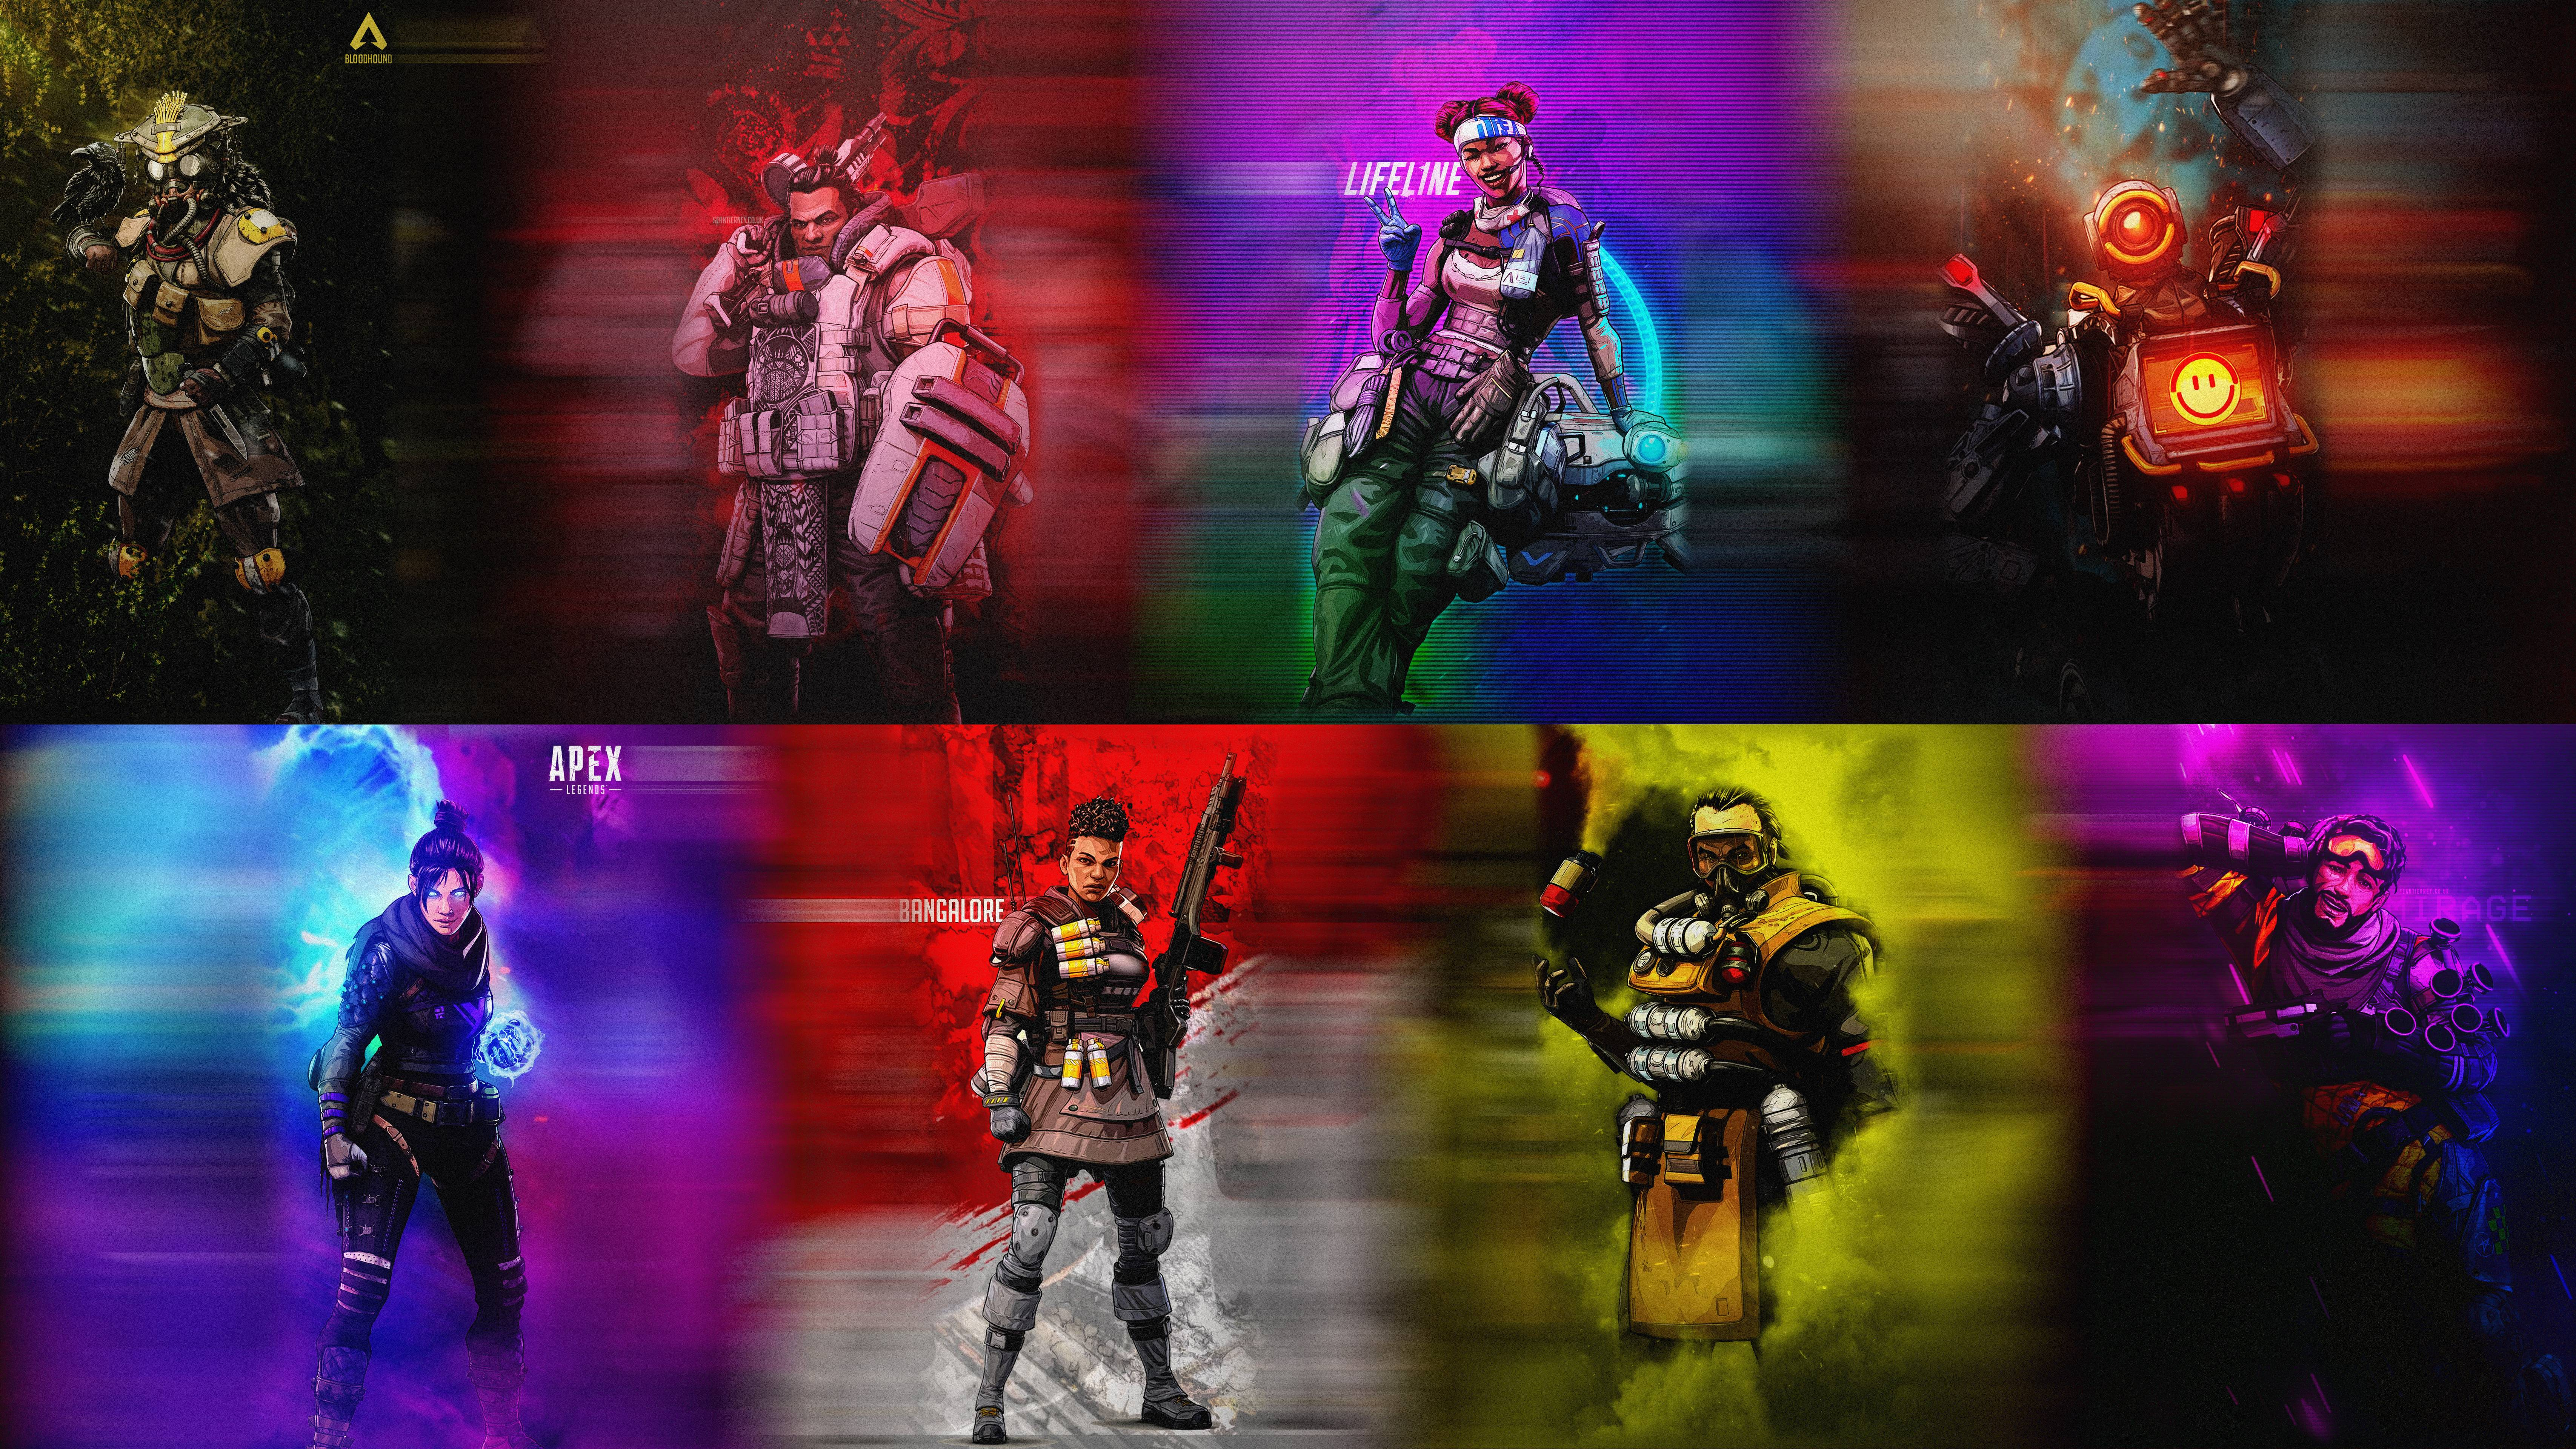 Apex Legends Season 2 Wallpapers Wallpaper Cave